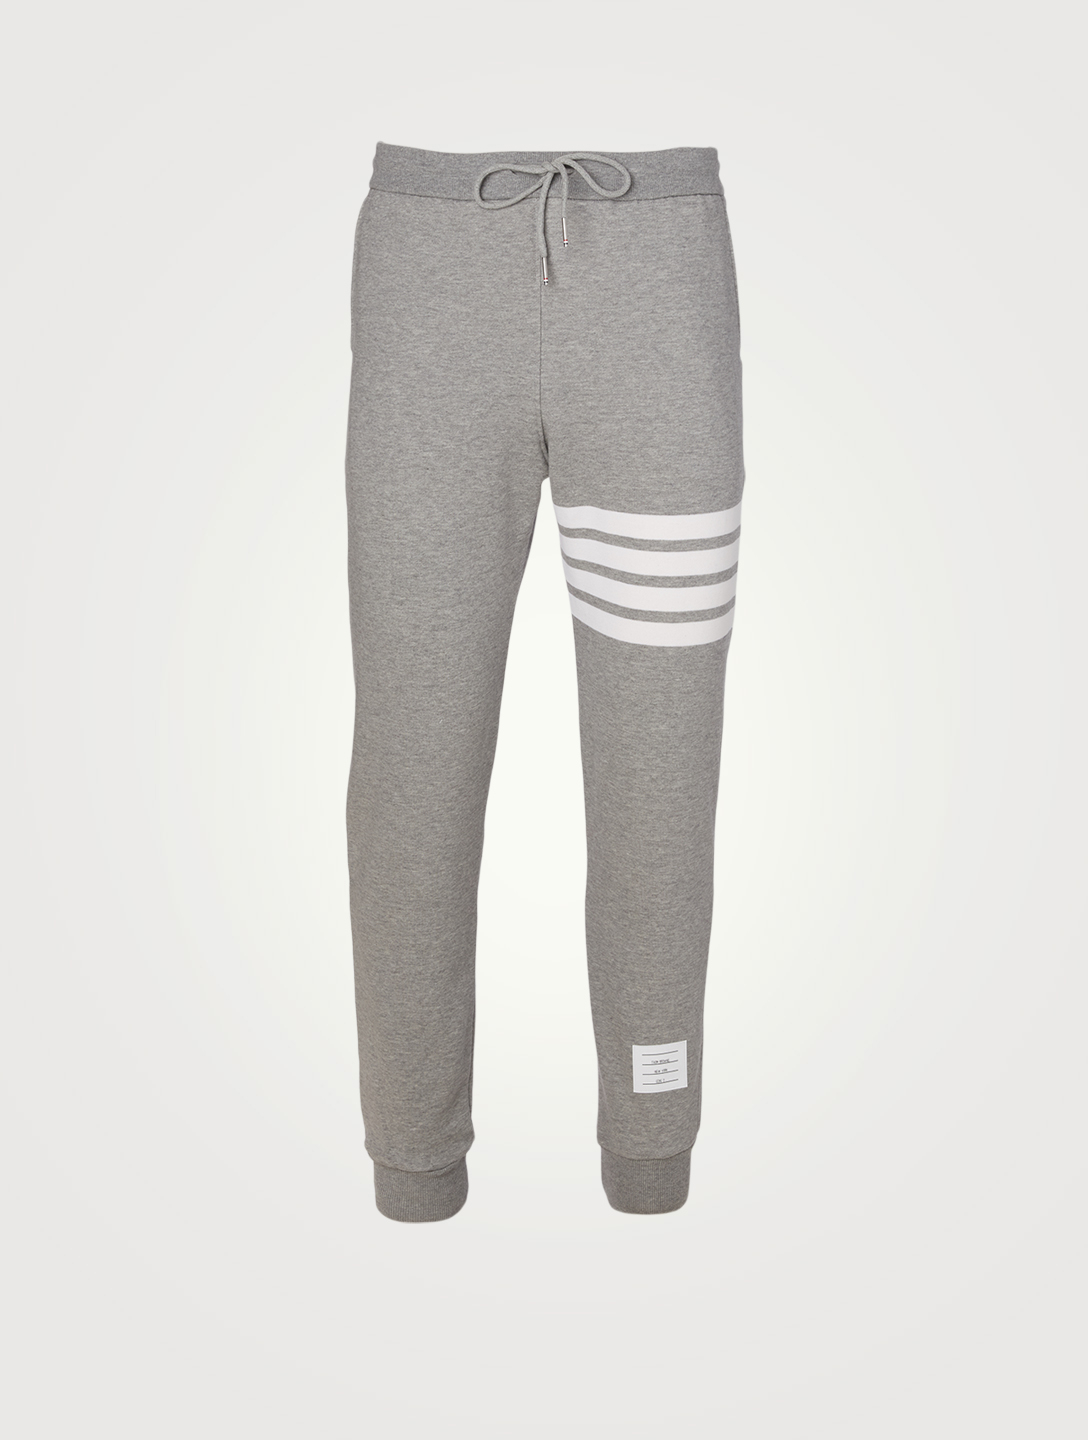 THOM BROWNE Four Bar Sweatpants Men's Grey